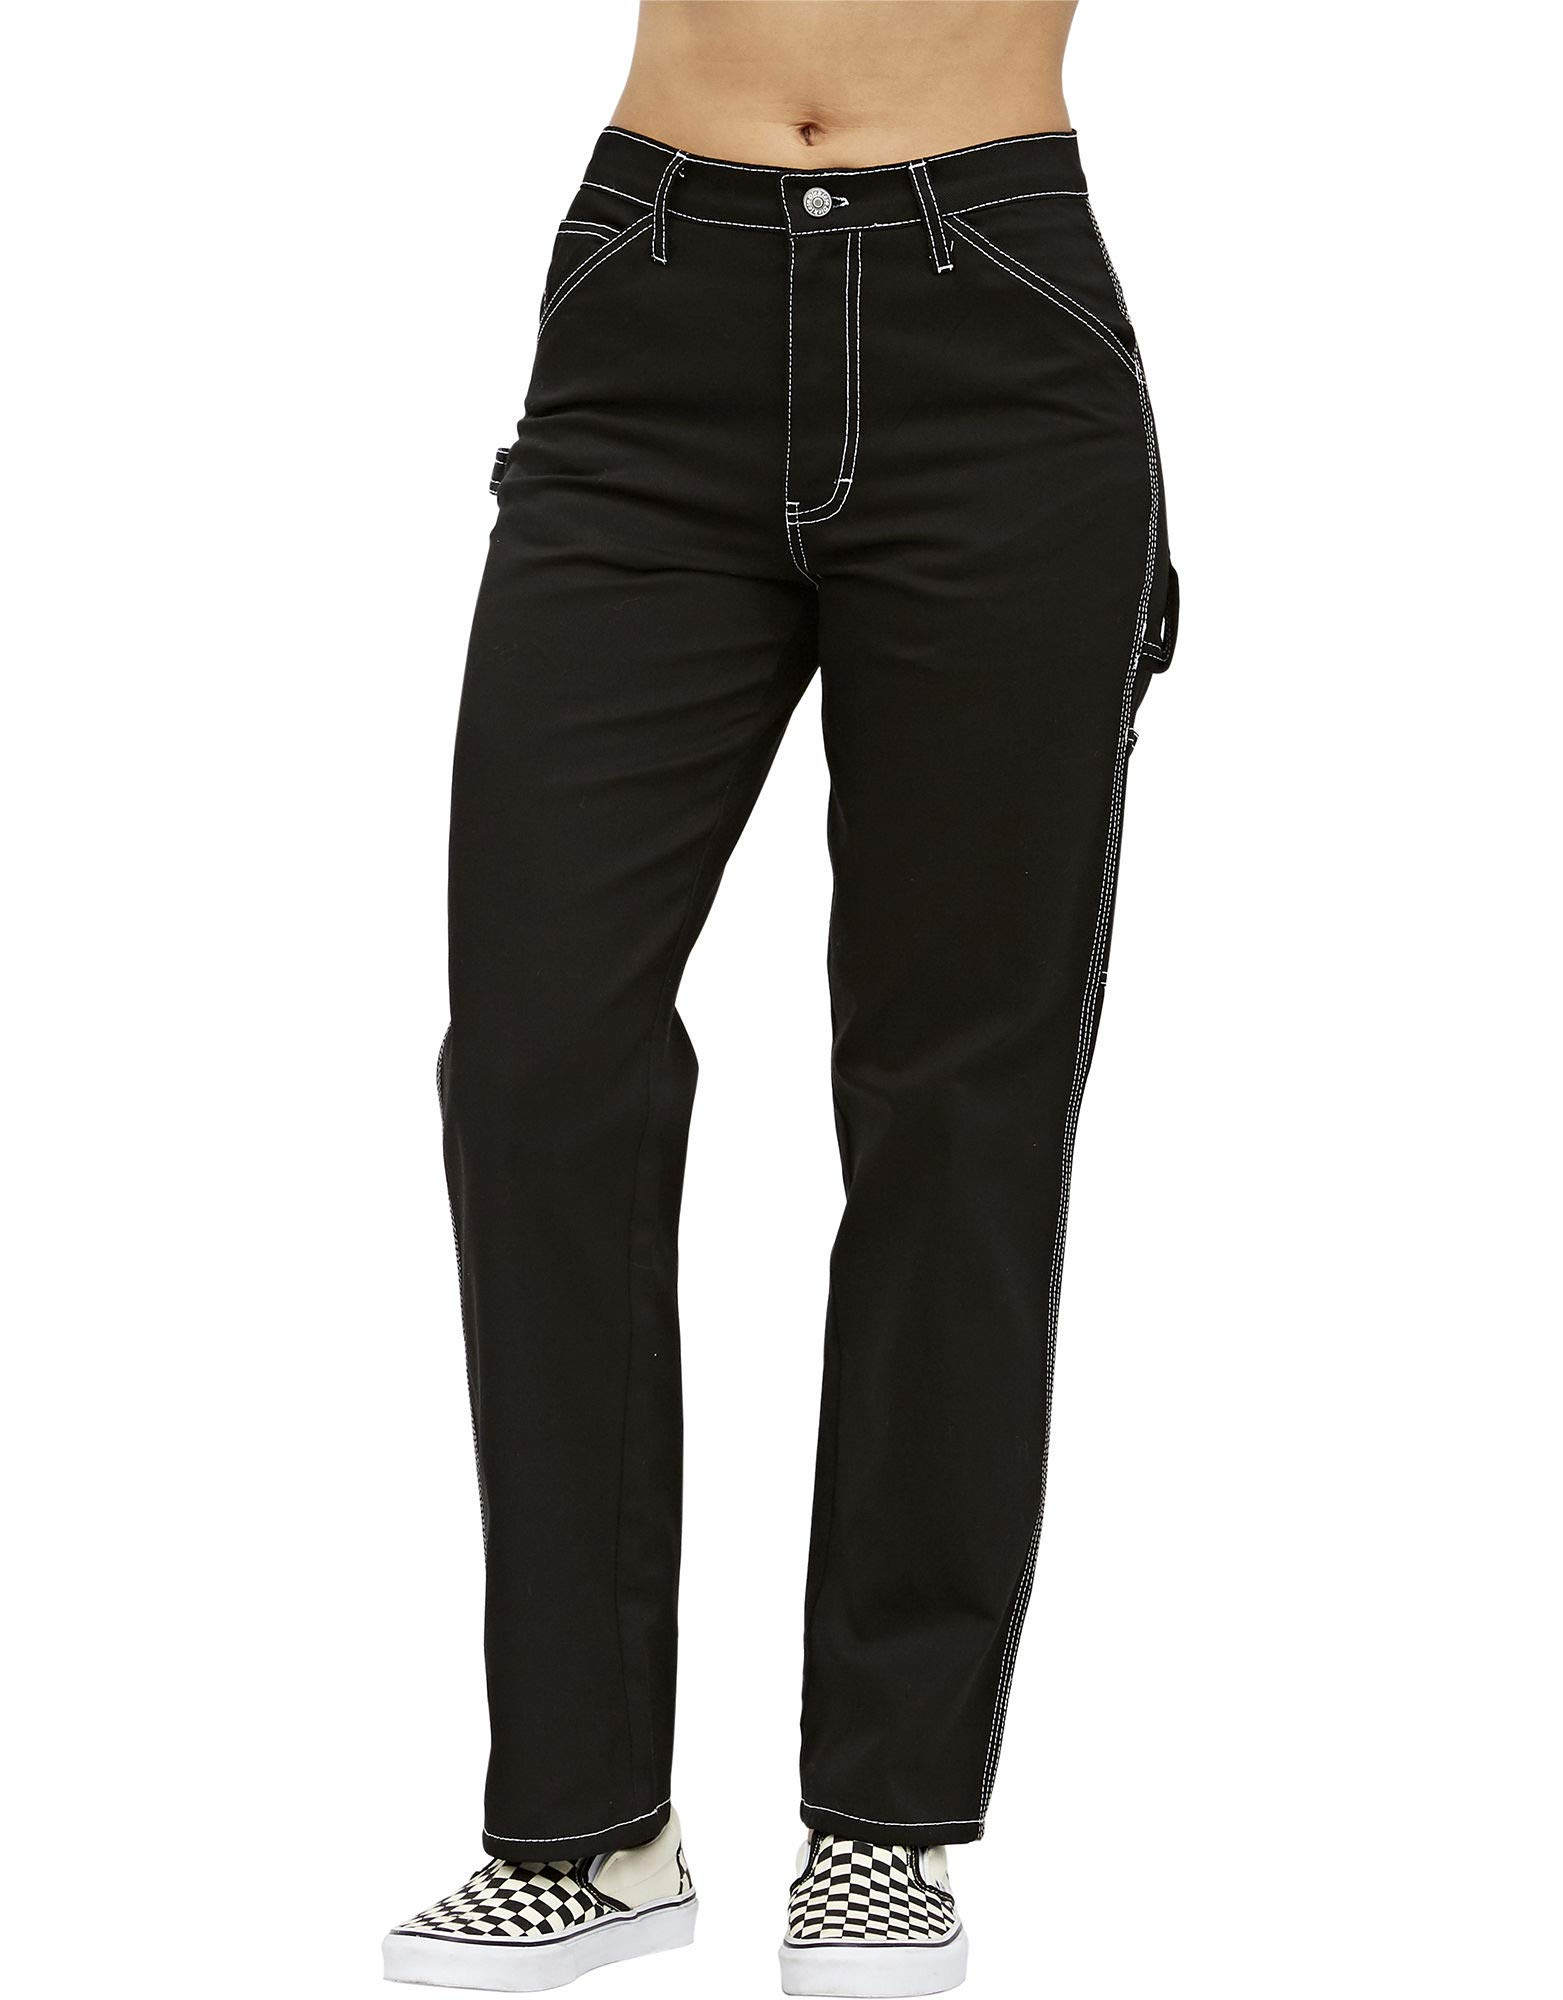 Dickies Girl Juniors' Relaxed Fit High-Rise Twill Carpenter Pants (Black, 5) by Dickies